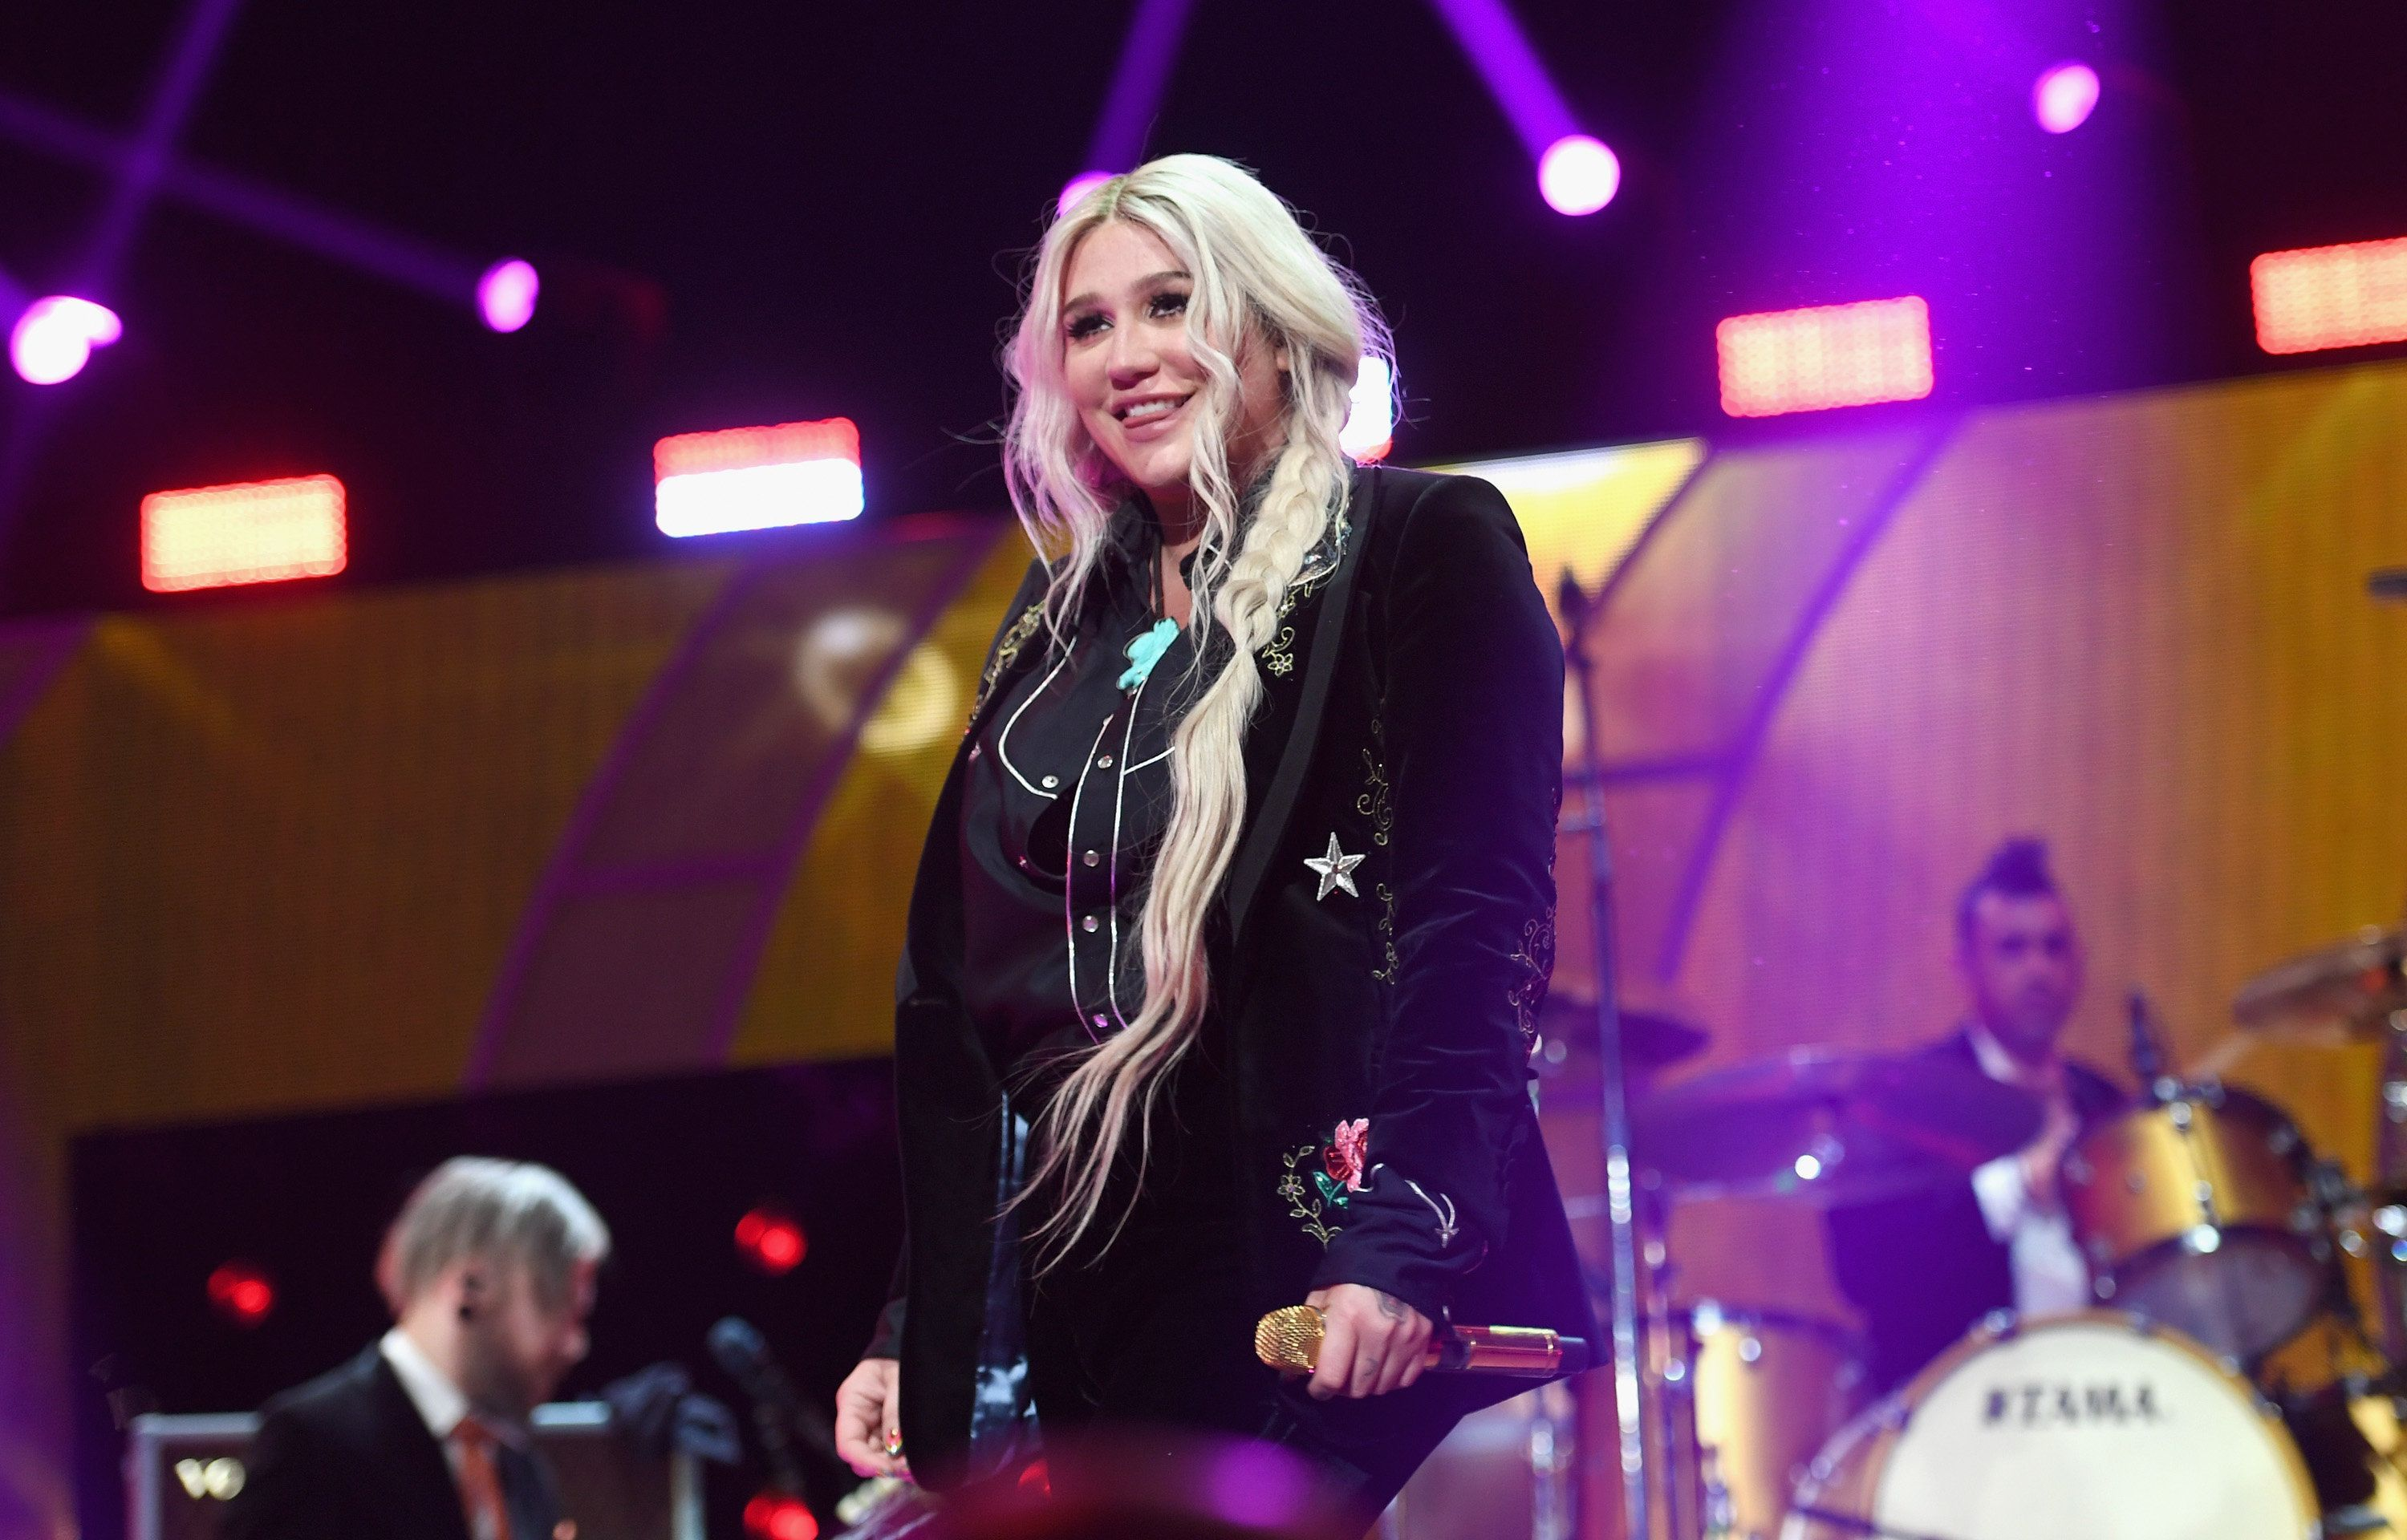 Kesha performs during the 2017 iHeartRadio Music Festival on Sept. 23. Shewrote an essayfor Time magazine on how